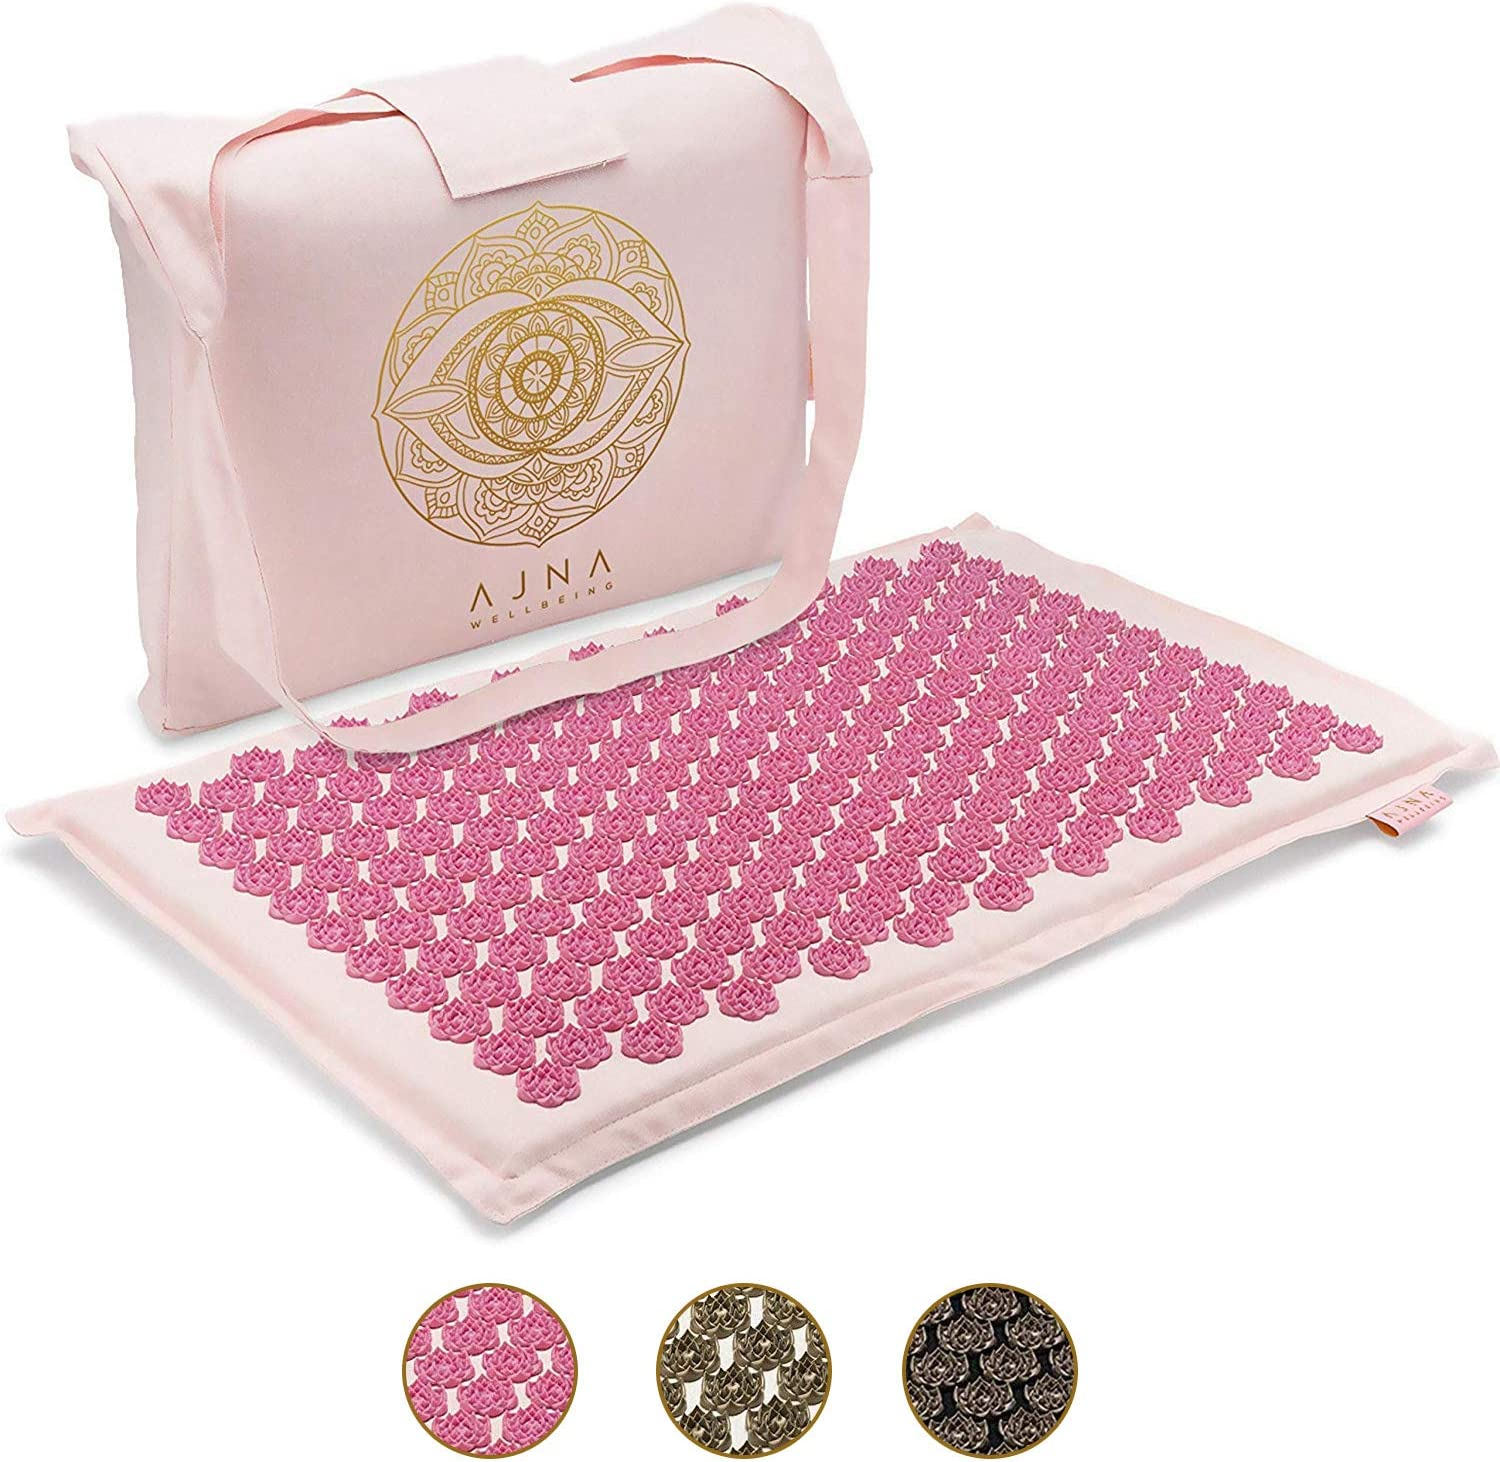 Acupressure Mat for Massage - Natural Organic Cotton Acupuncture Mat & Bag (Lotus Lily)